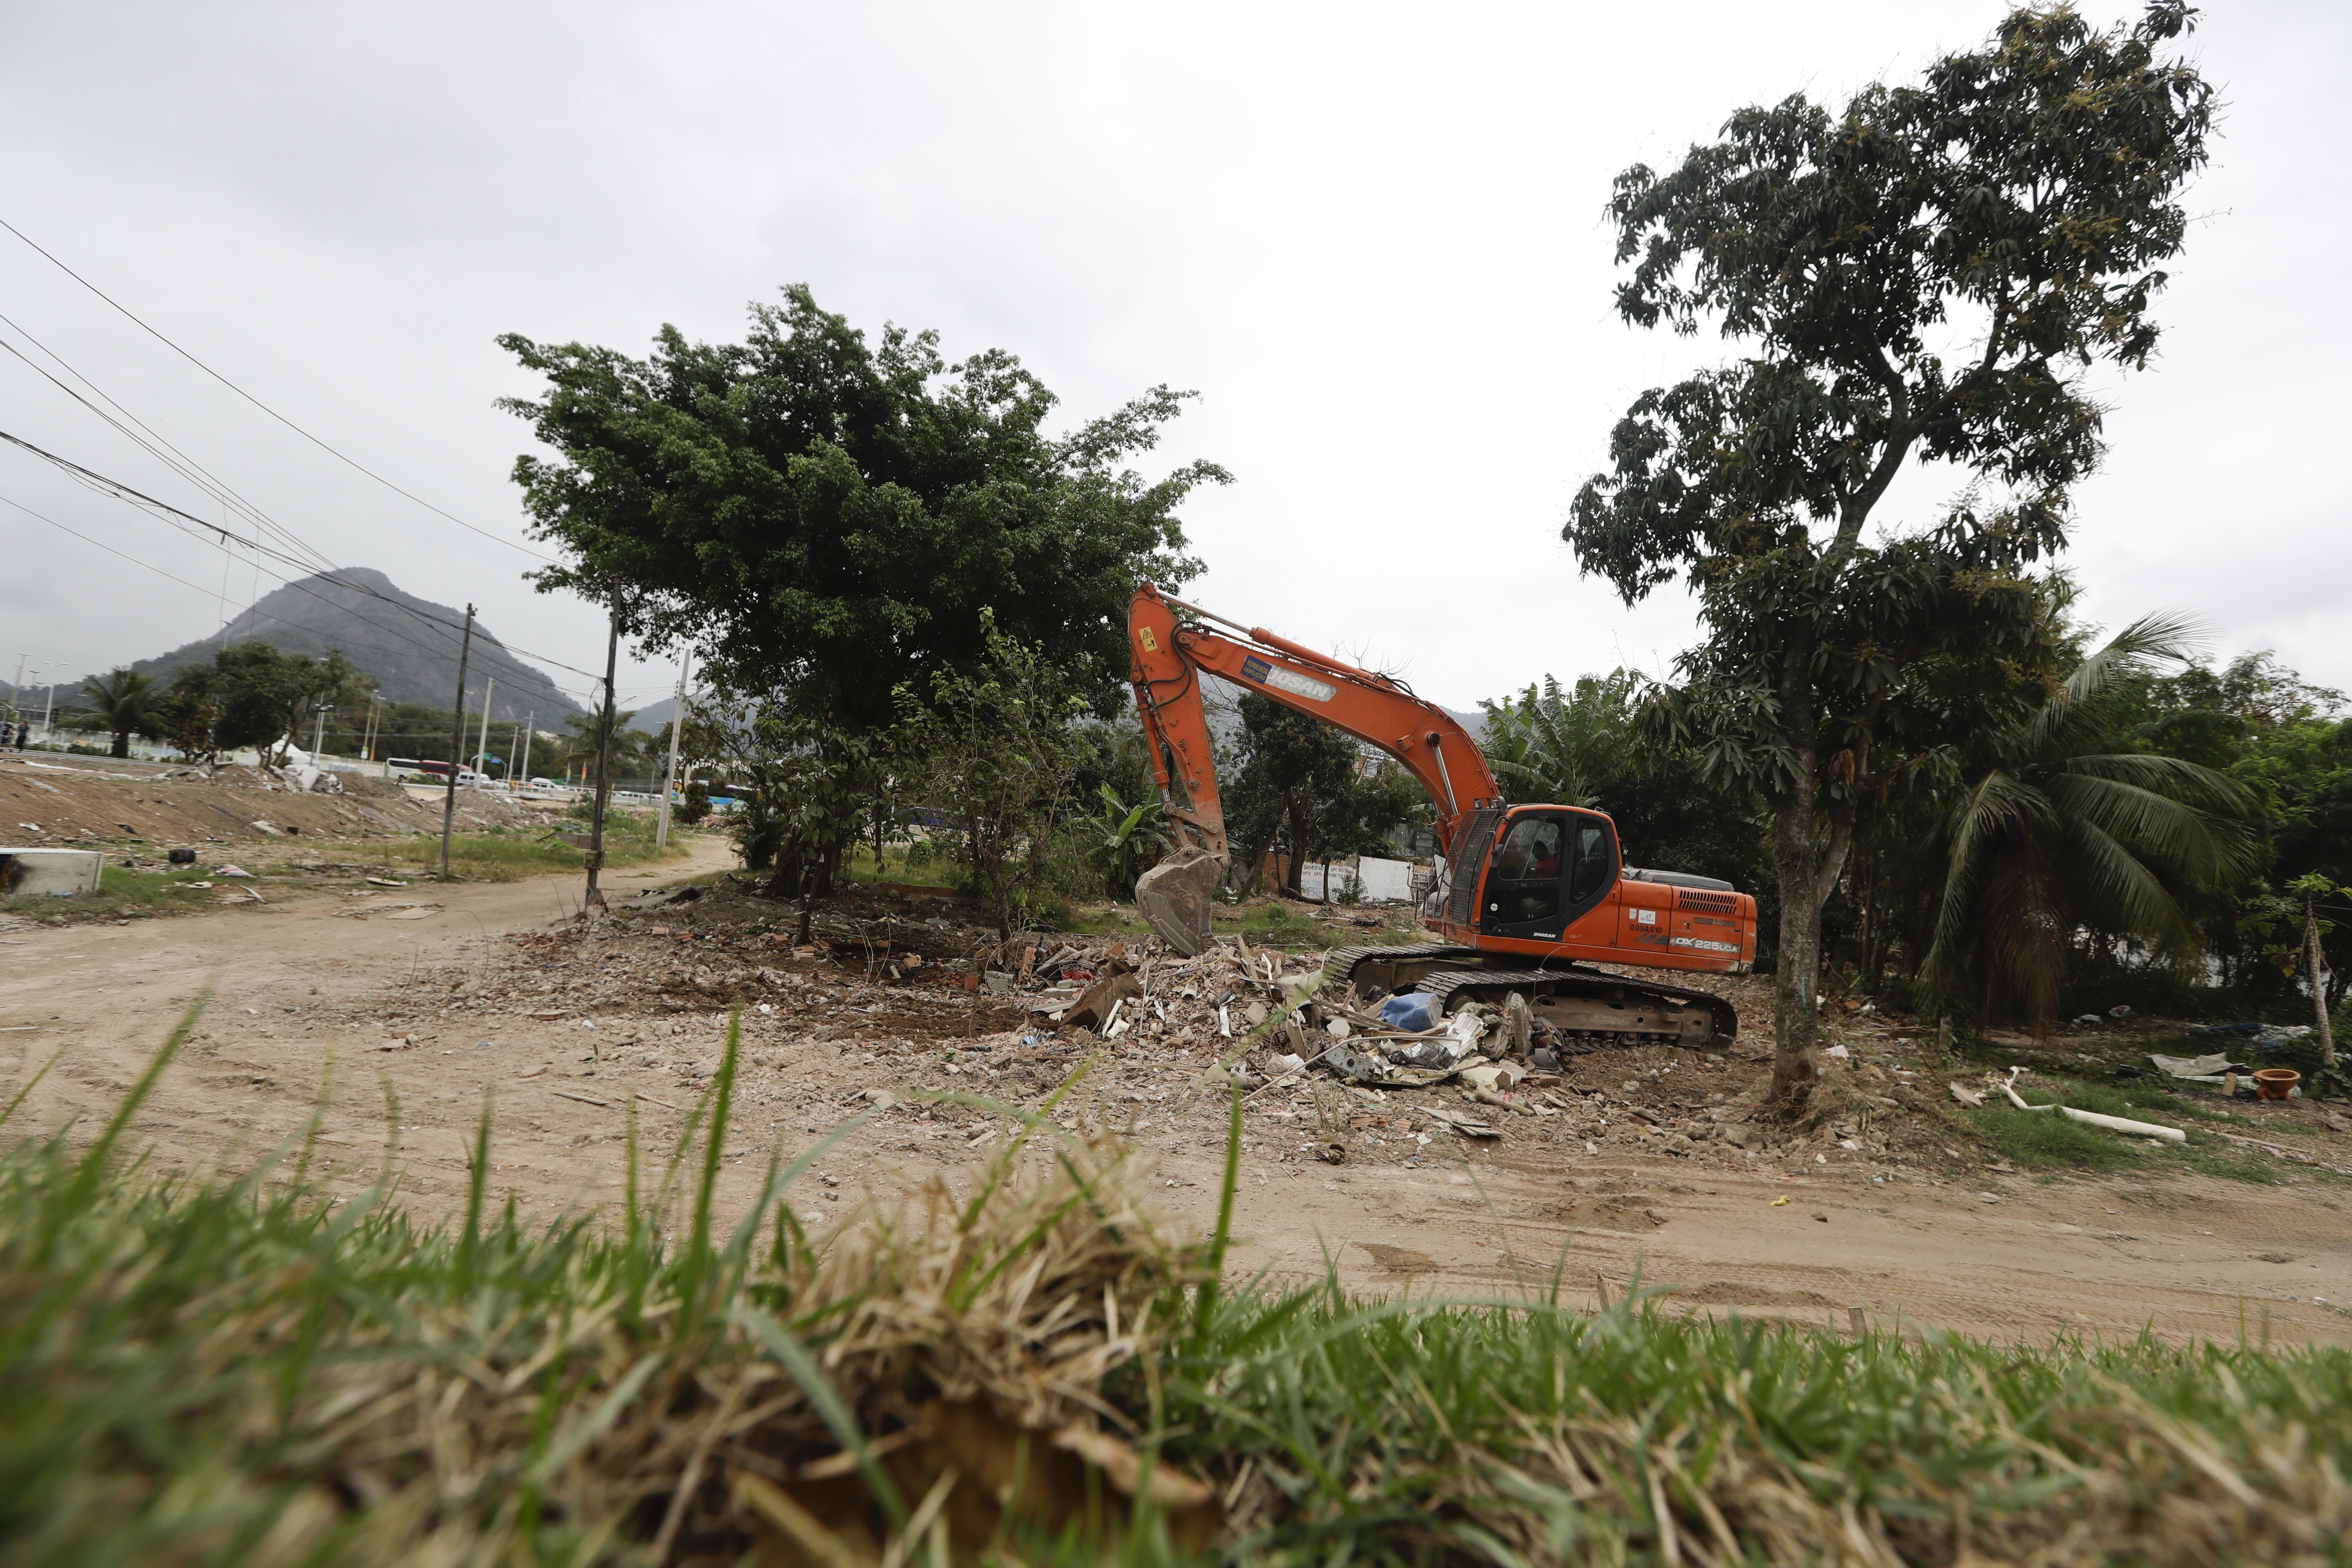 A crane stands where the last house was destroyed near the Olympic Park ahead of the 2016 Summer Olympics in Rio de Janeiro, Brazil, Wednesday, Aug. 3, 2016. (AP Photo/Frank Franklin II)